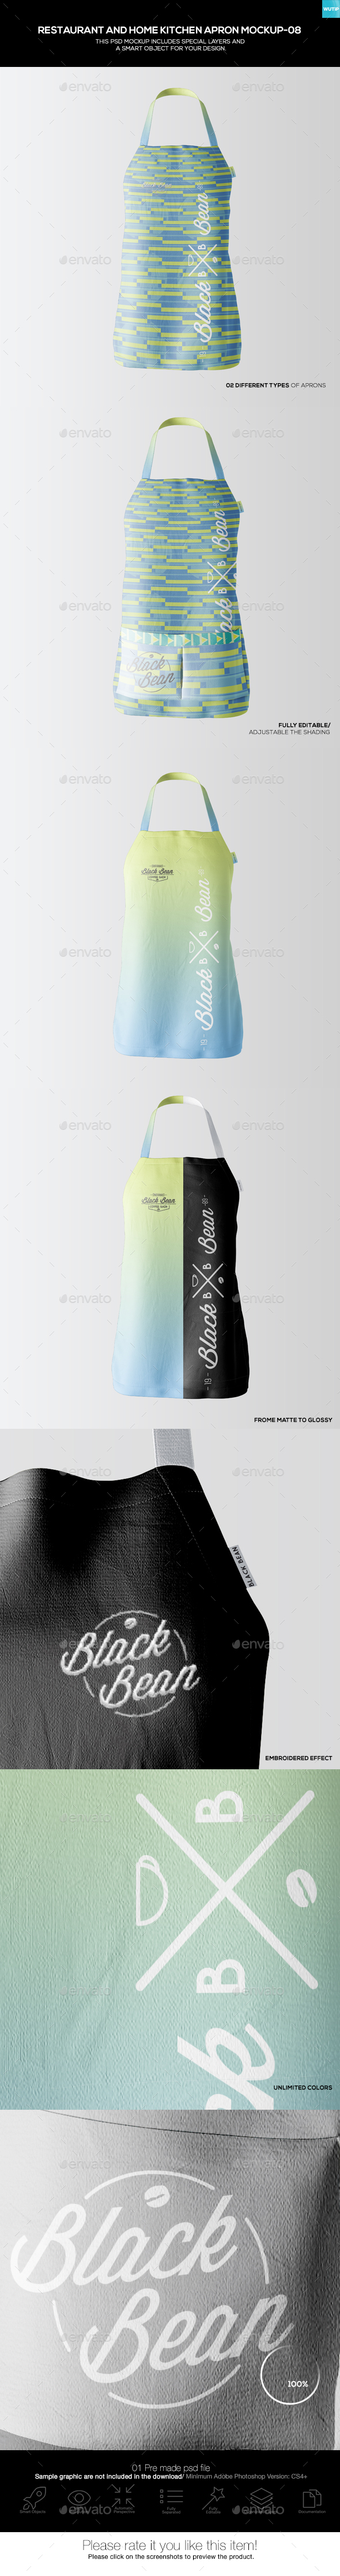 Restaurant and Home Kietchen Apron Mockup-08) - Miscellaneous Apparel